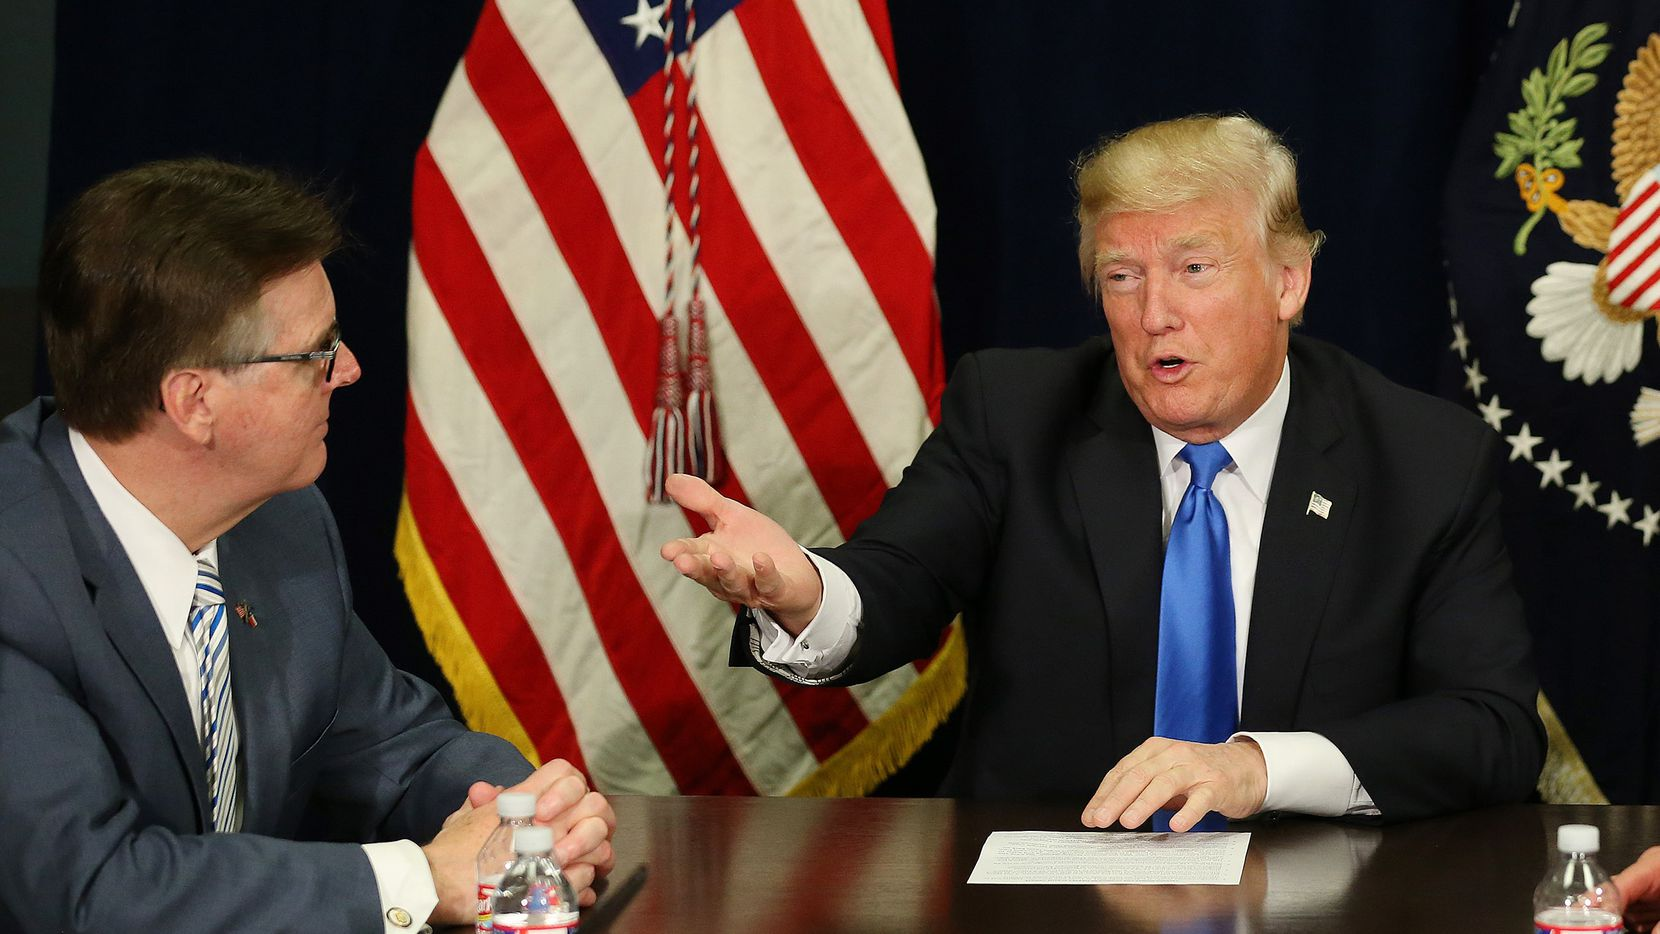 President Donald Trump, shown with Lt. Gov. Dan Patrick during a 2017 visit to Dallas, has kept promises such as tax cuts and is more in tune with Texas voters than anyone the Democrats will nominate, Patrick said Tuesday.